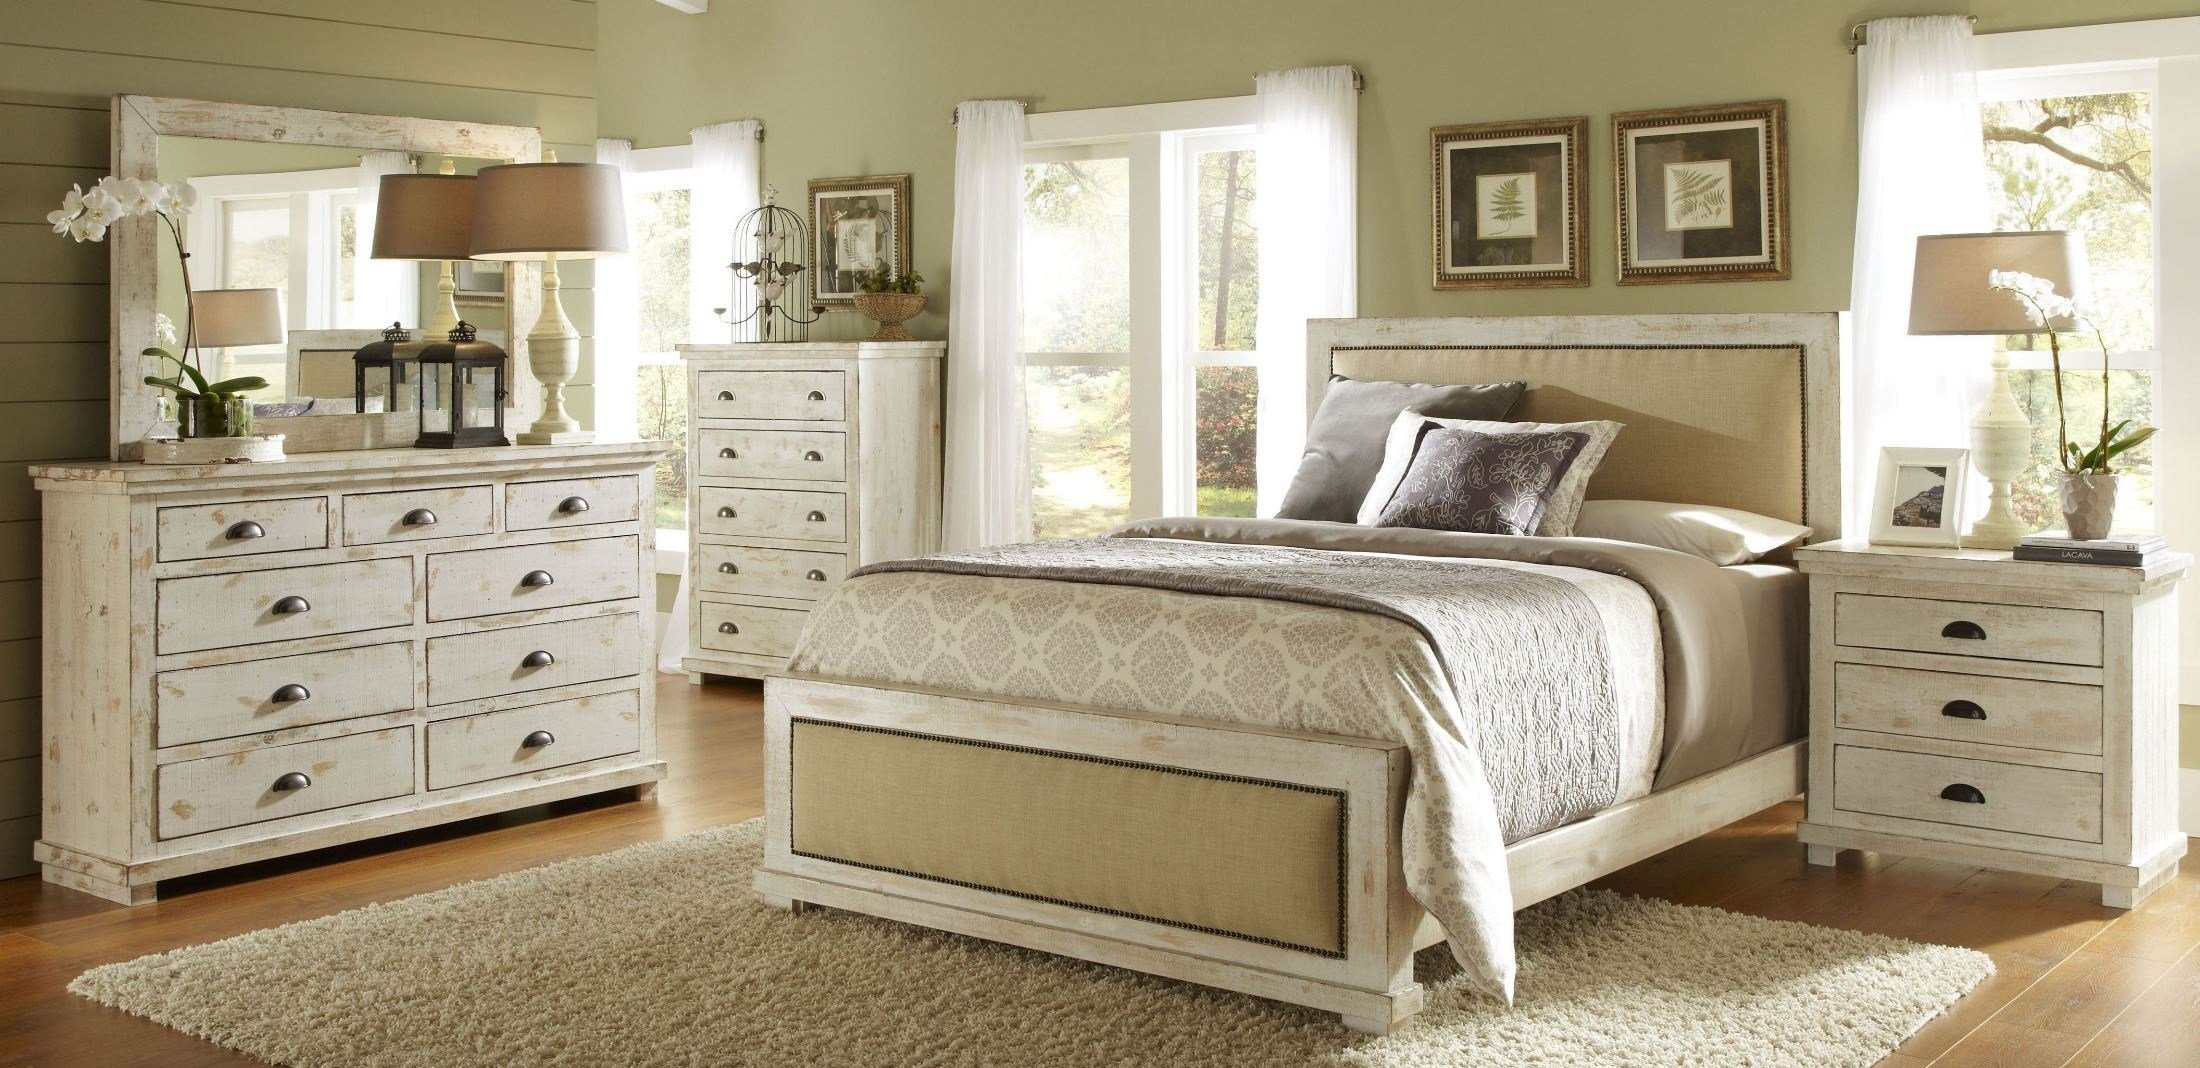 Best Willow Distressed White Upholstered Bedroom Set P610 34 With Pictures